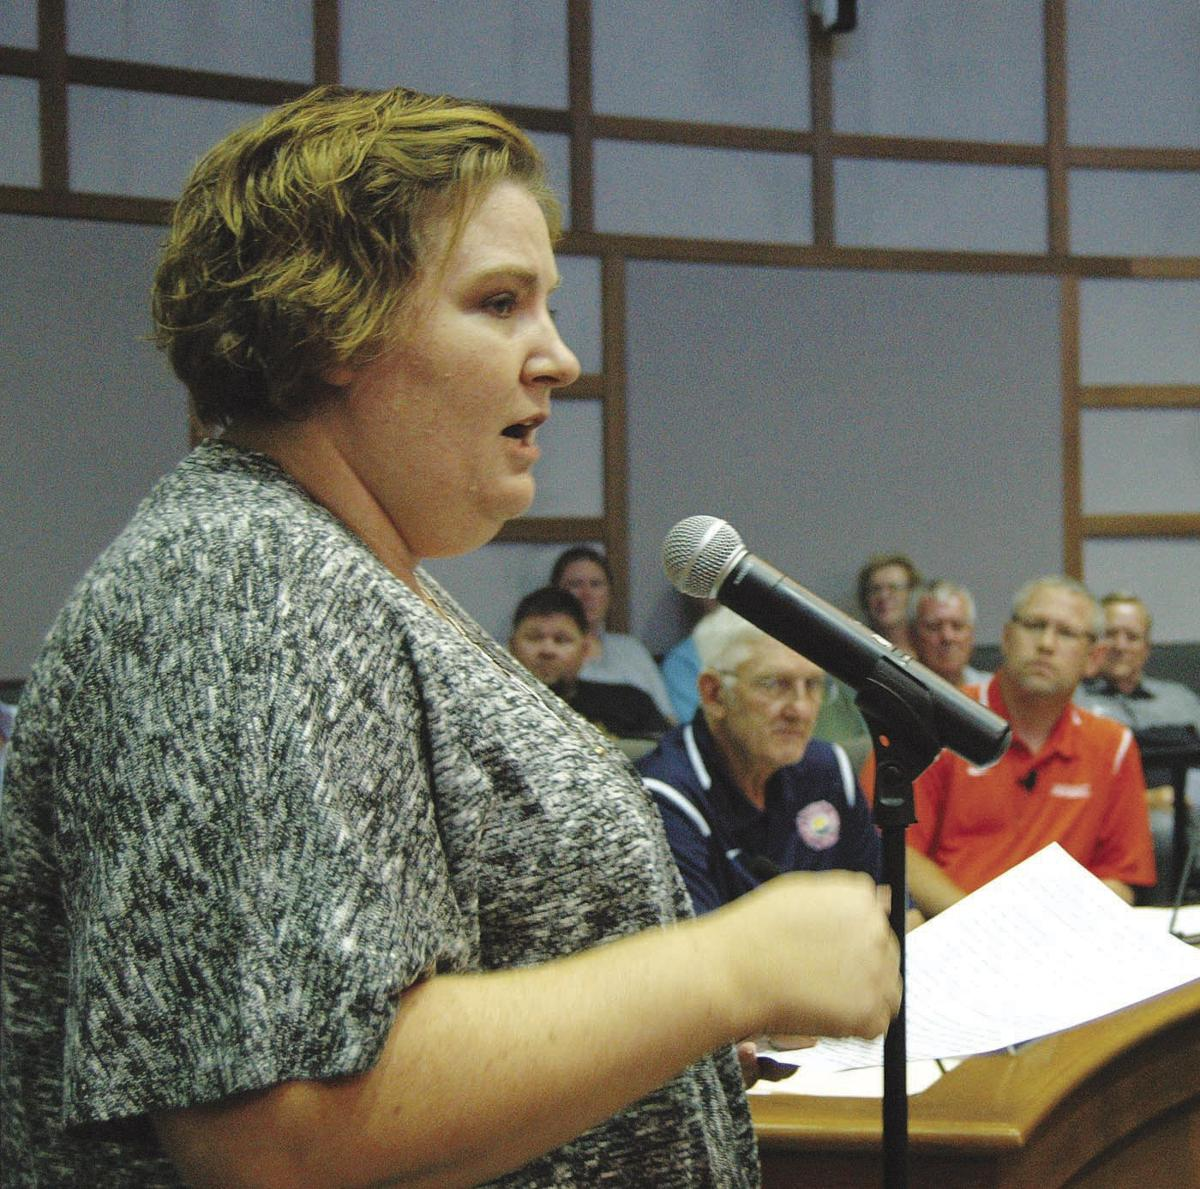 Speakers urge village board to approve sports complex